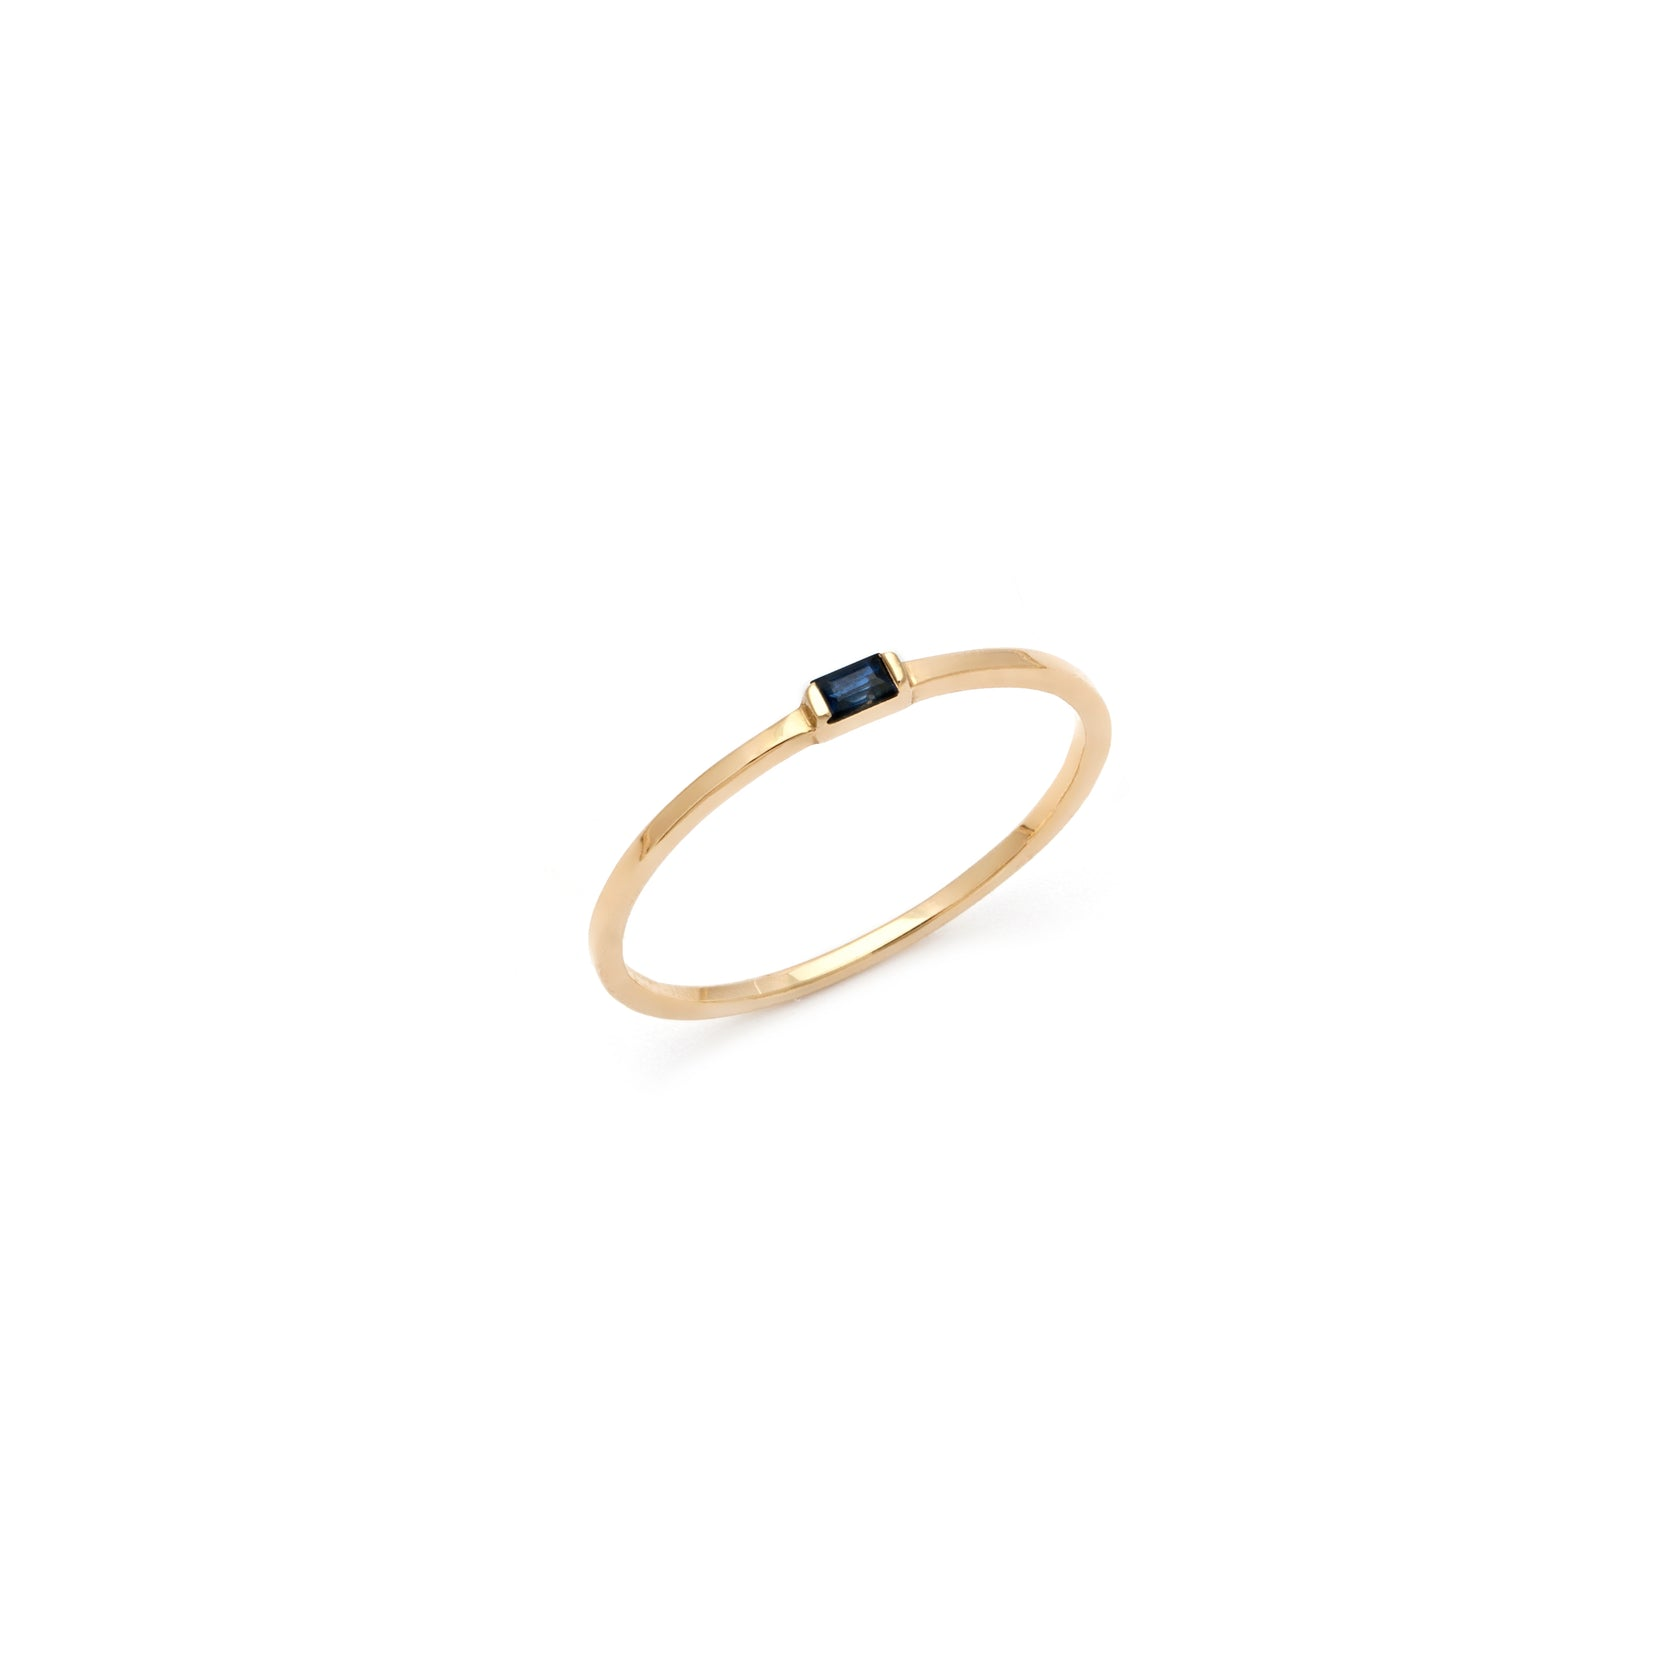 Coveted Sapphire Ring - 14k Solid Gold